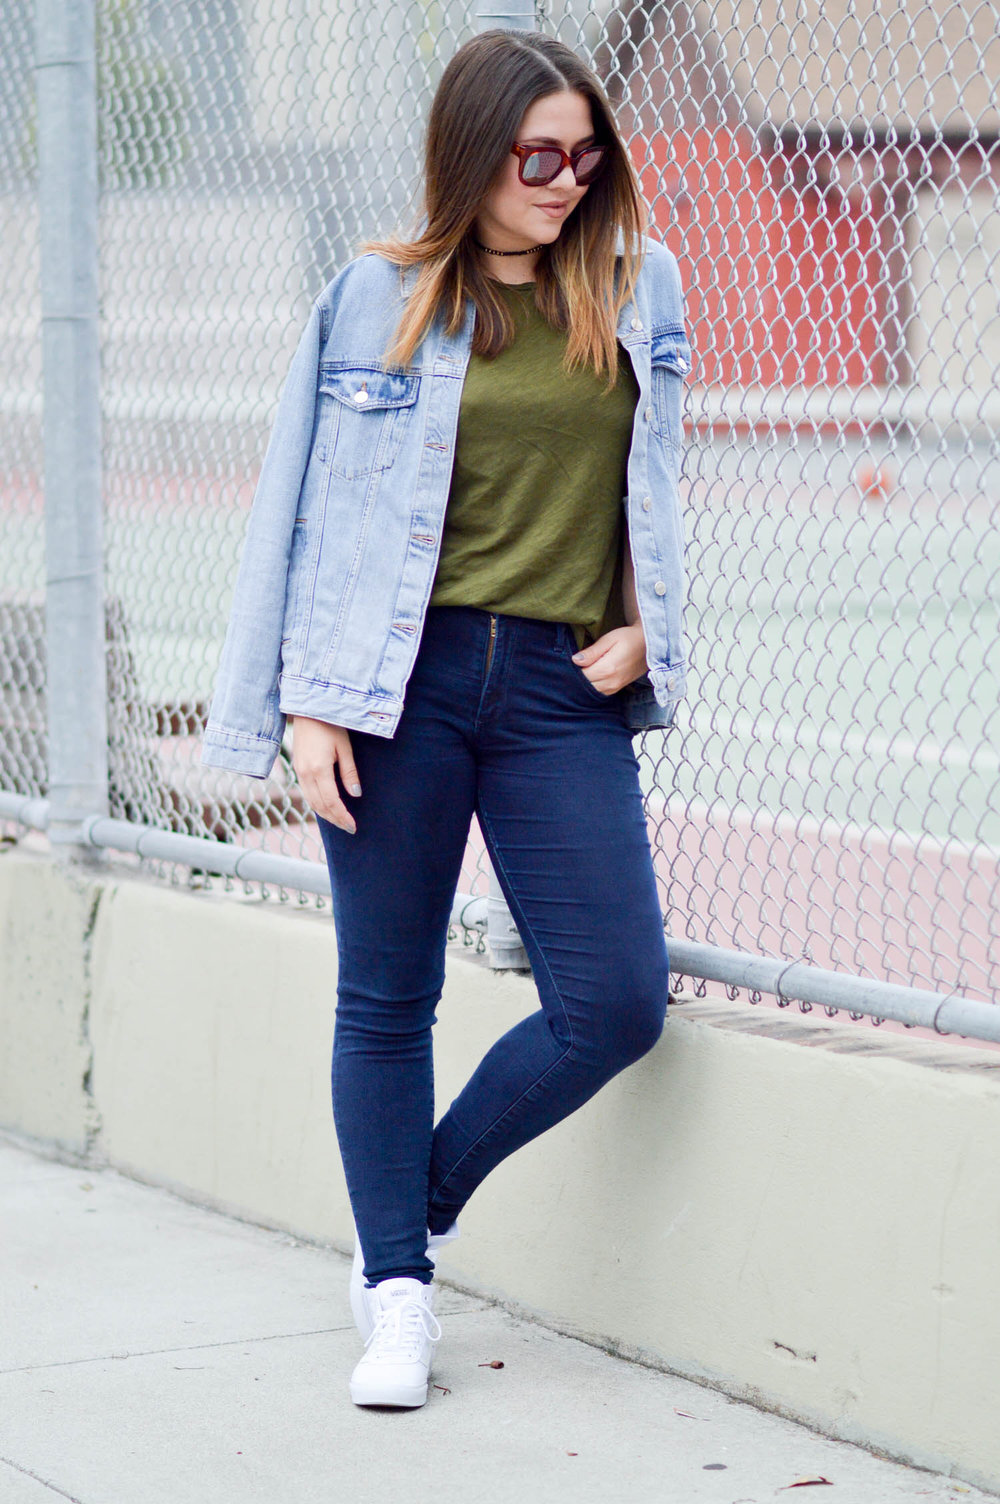 Canadian Tuxedo, oversized denim jacket and reflective sunglasses via. www.birdieshoots.com